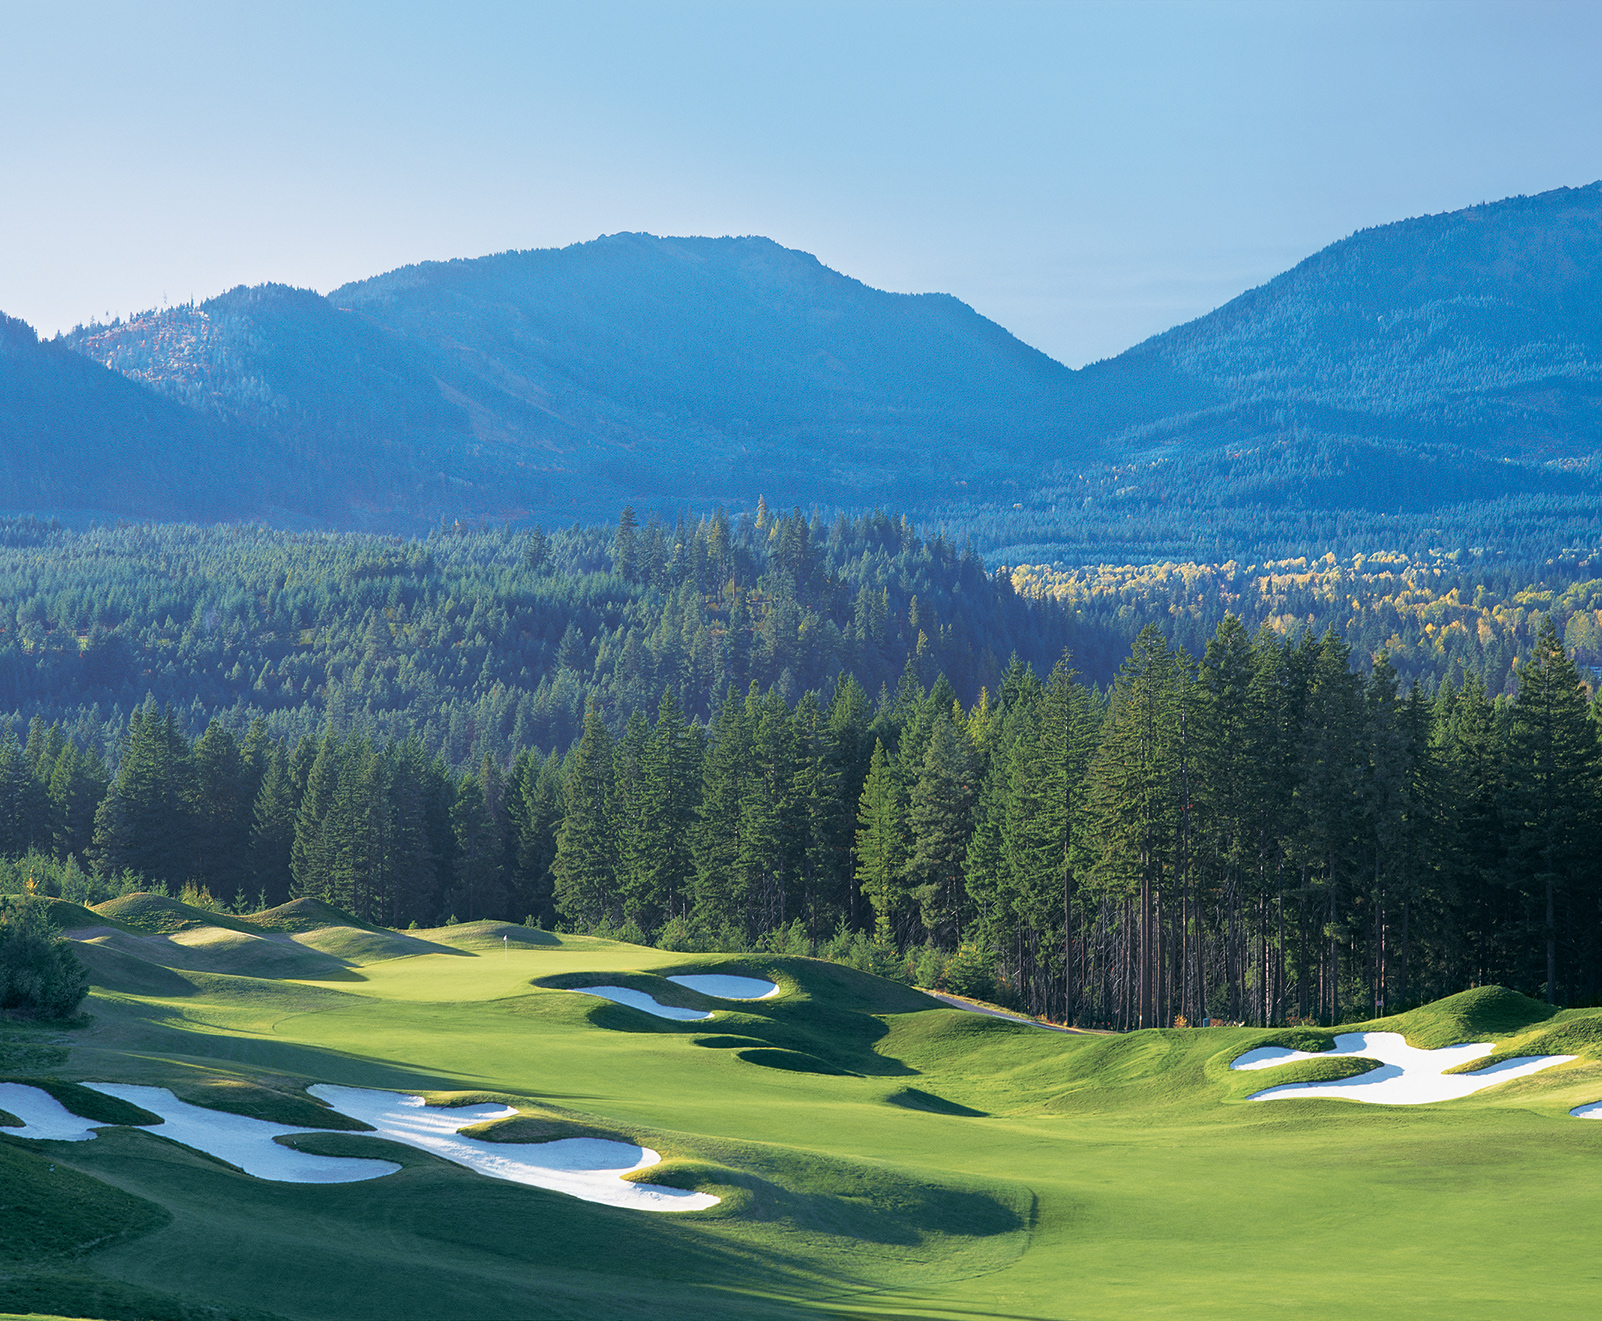 Suncadia is home to 36 holes of award winning golf, take advantage of long Summer days and get in a round or two.